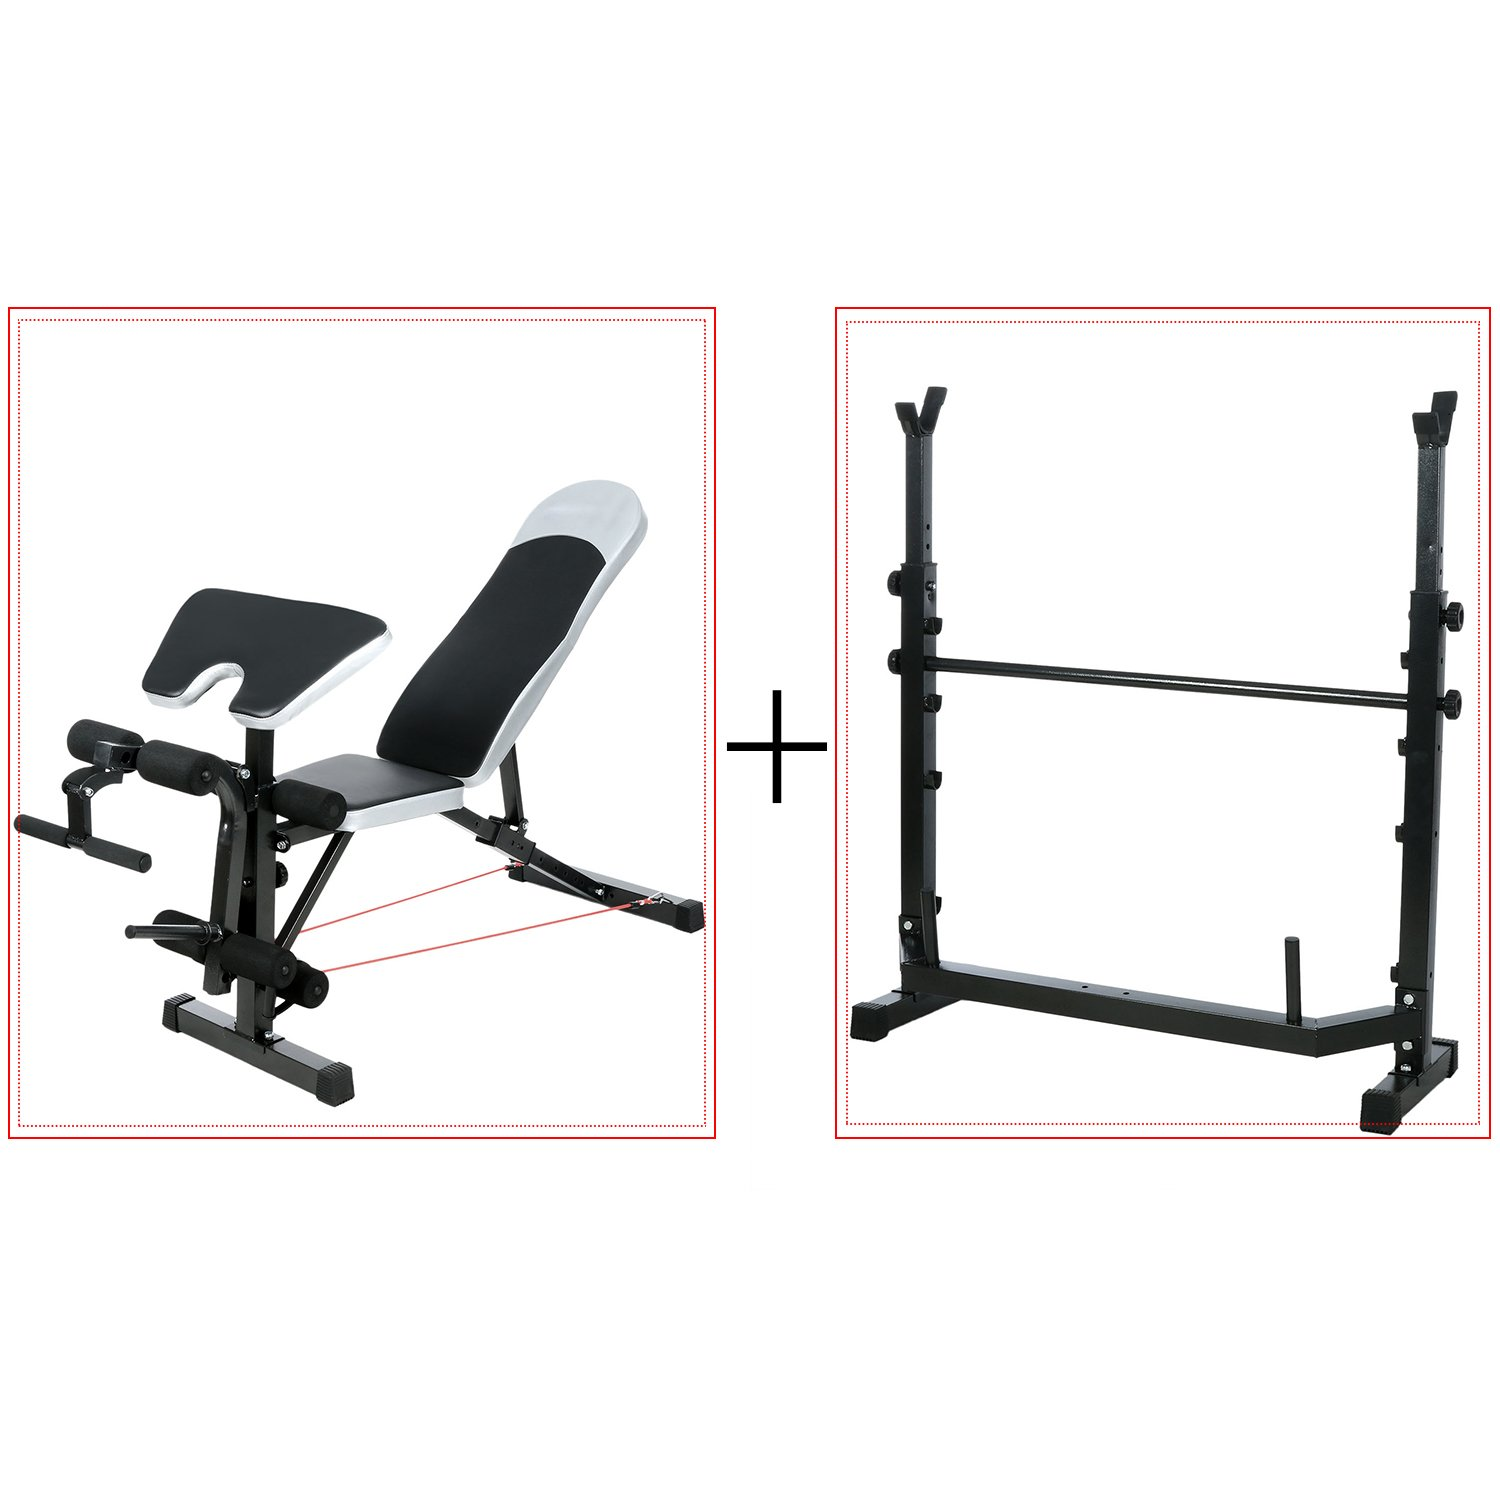 Olympic Weight Bench Adjustable Bench with Barbell Rack by Ultrar sports